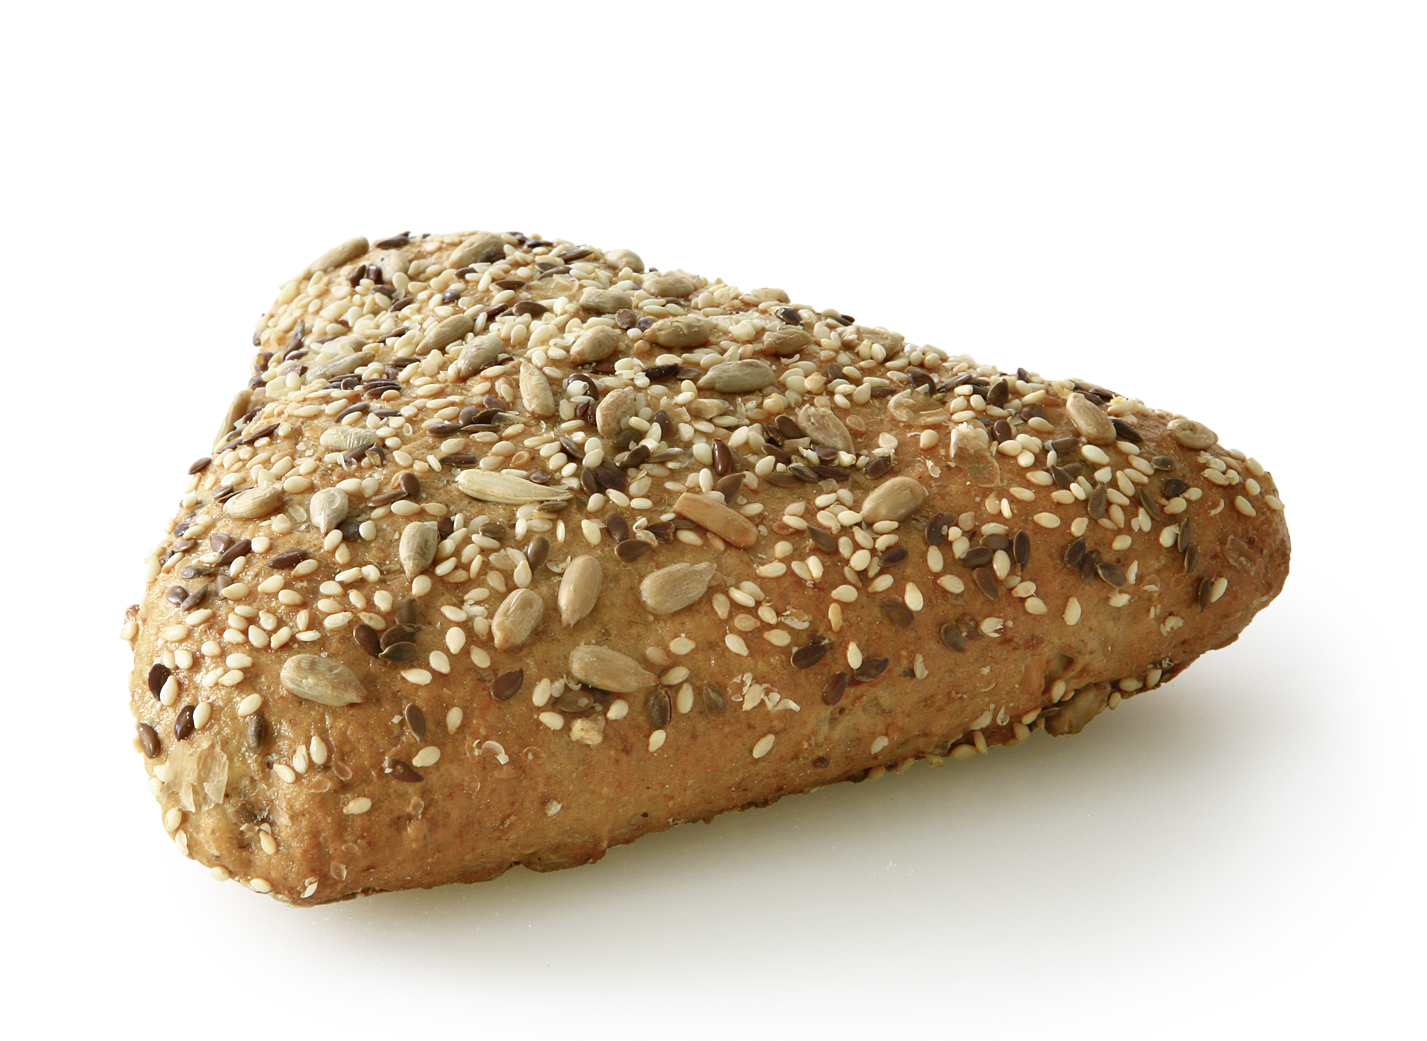 Multi-Grain Triangle - Small wheat bakery shaped triangular and sprinkled with linseeds, sunflower seeds, sesame and pumpkin seeds